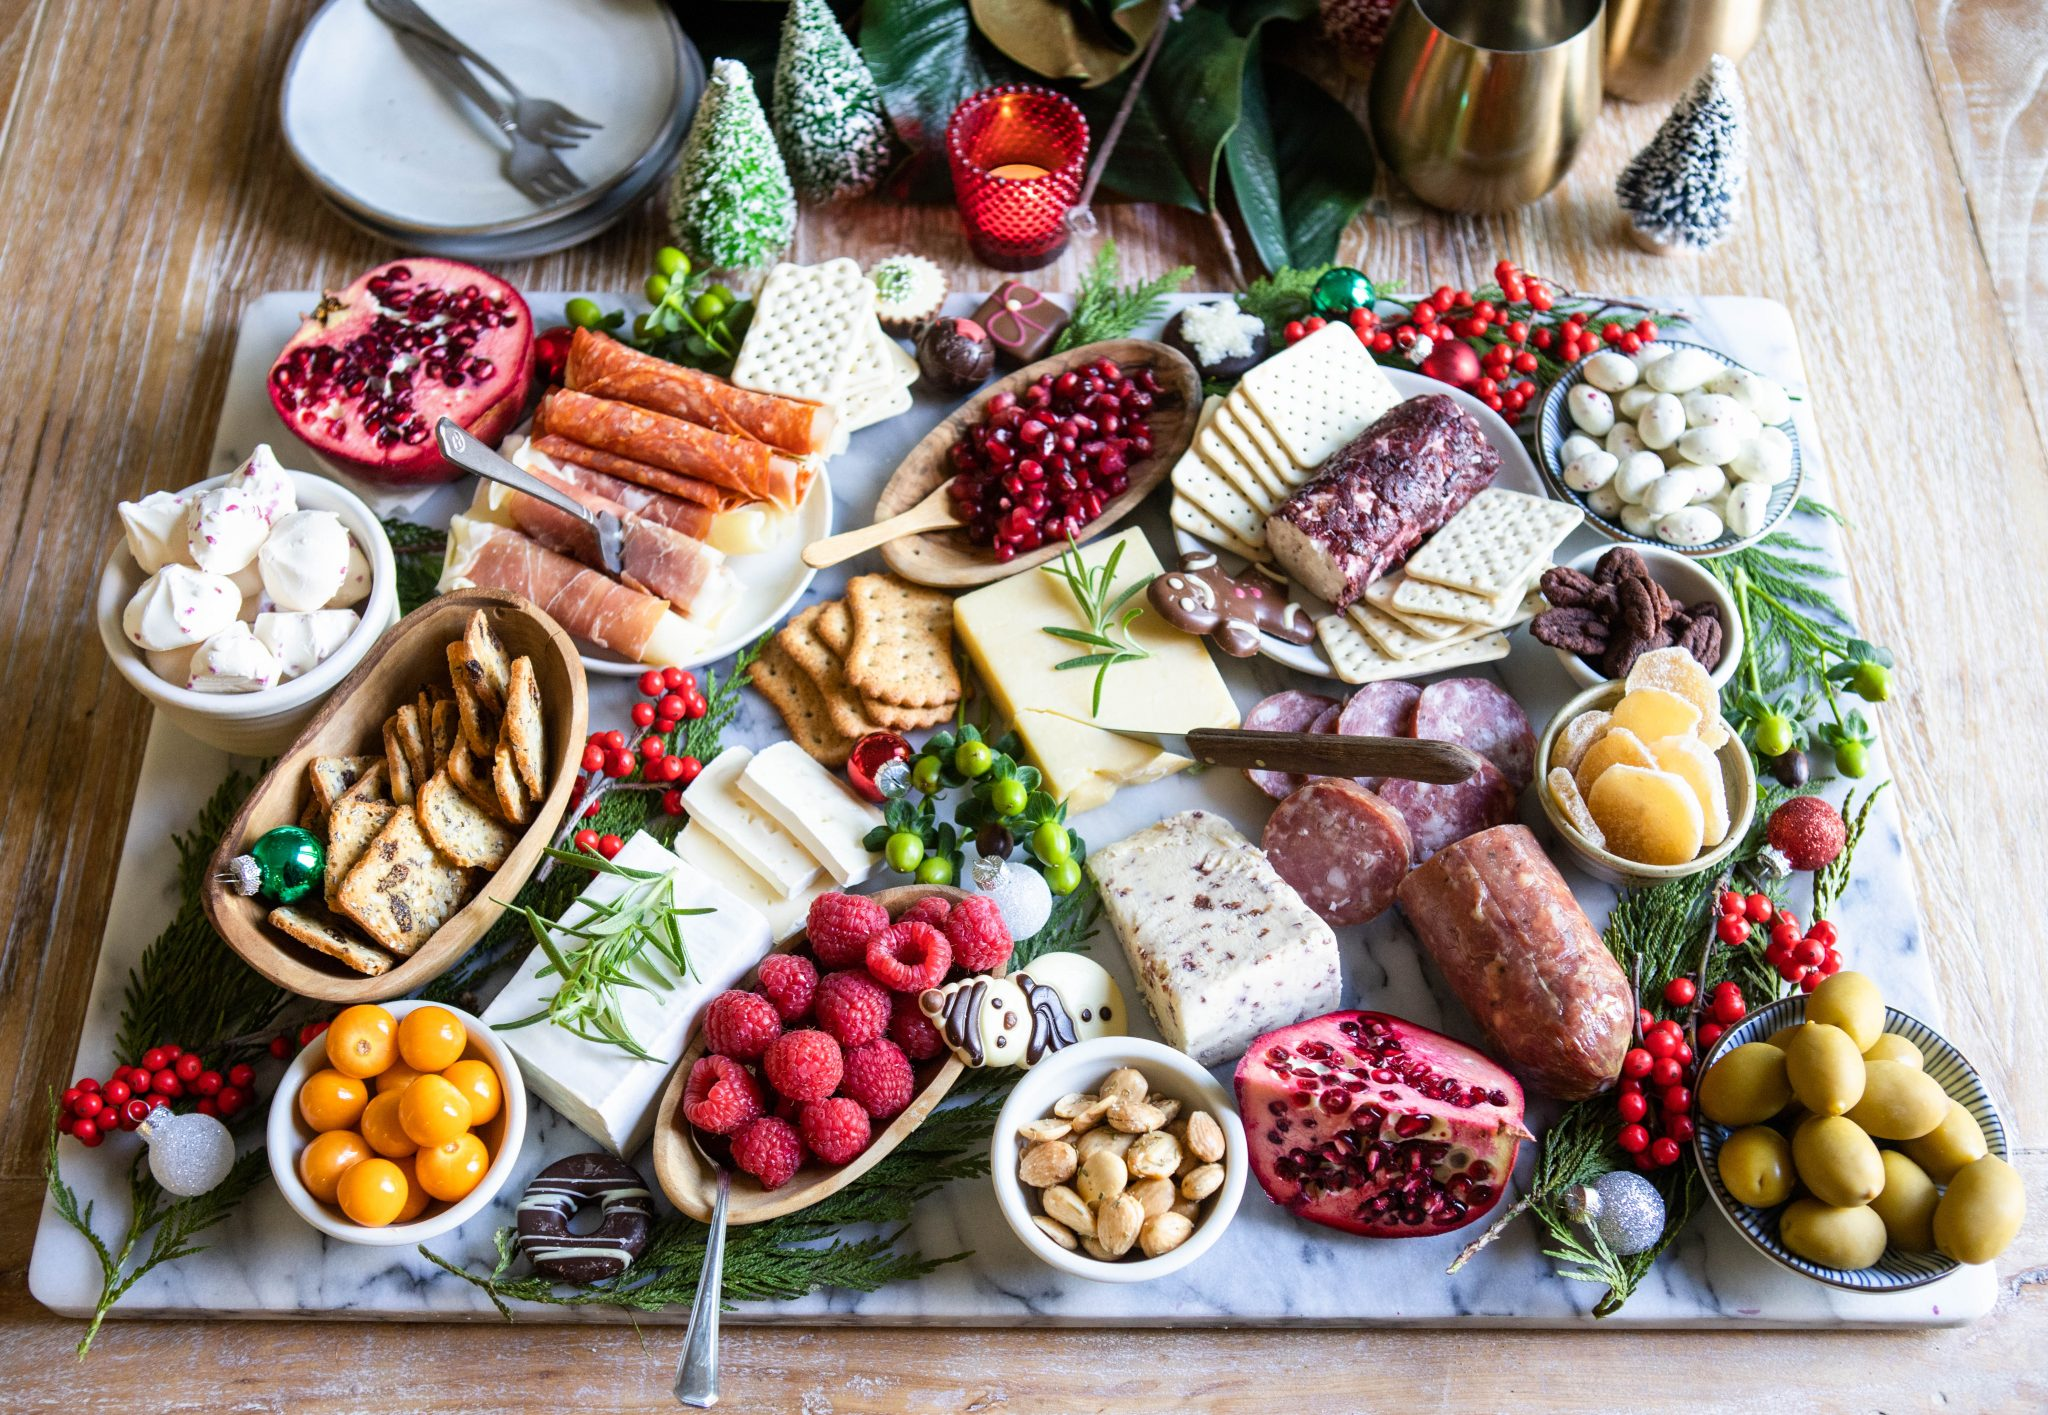 charcuterie board display with meats and cheeses and seasonal greenery